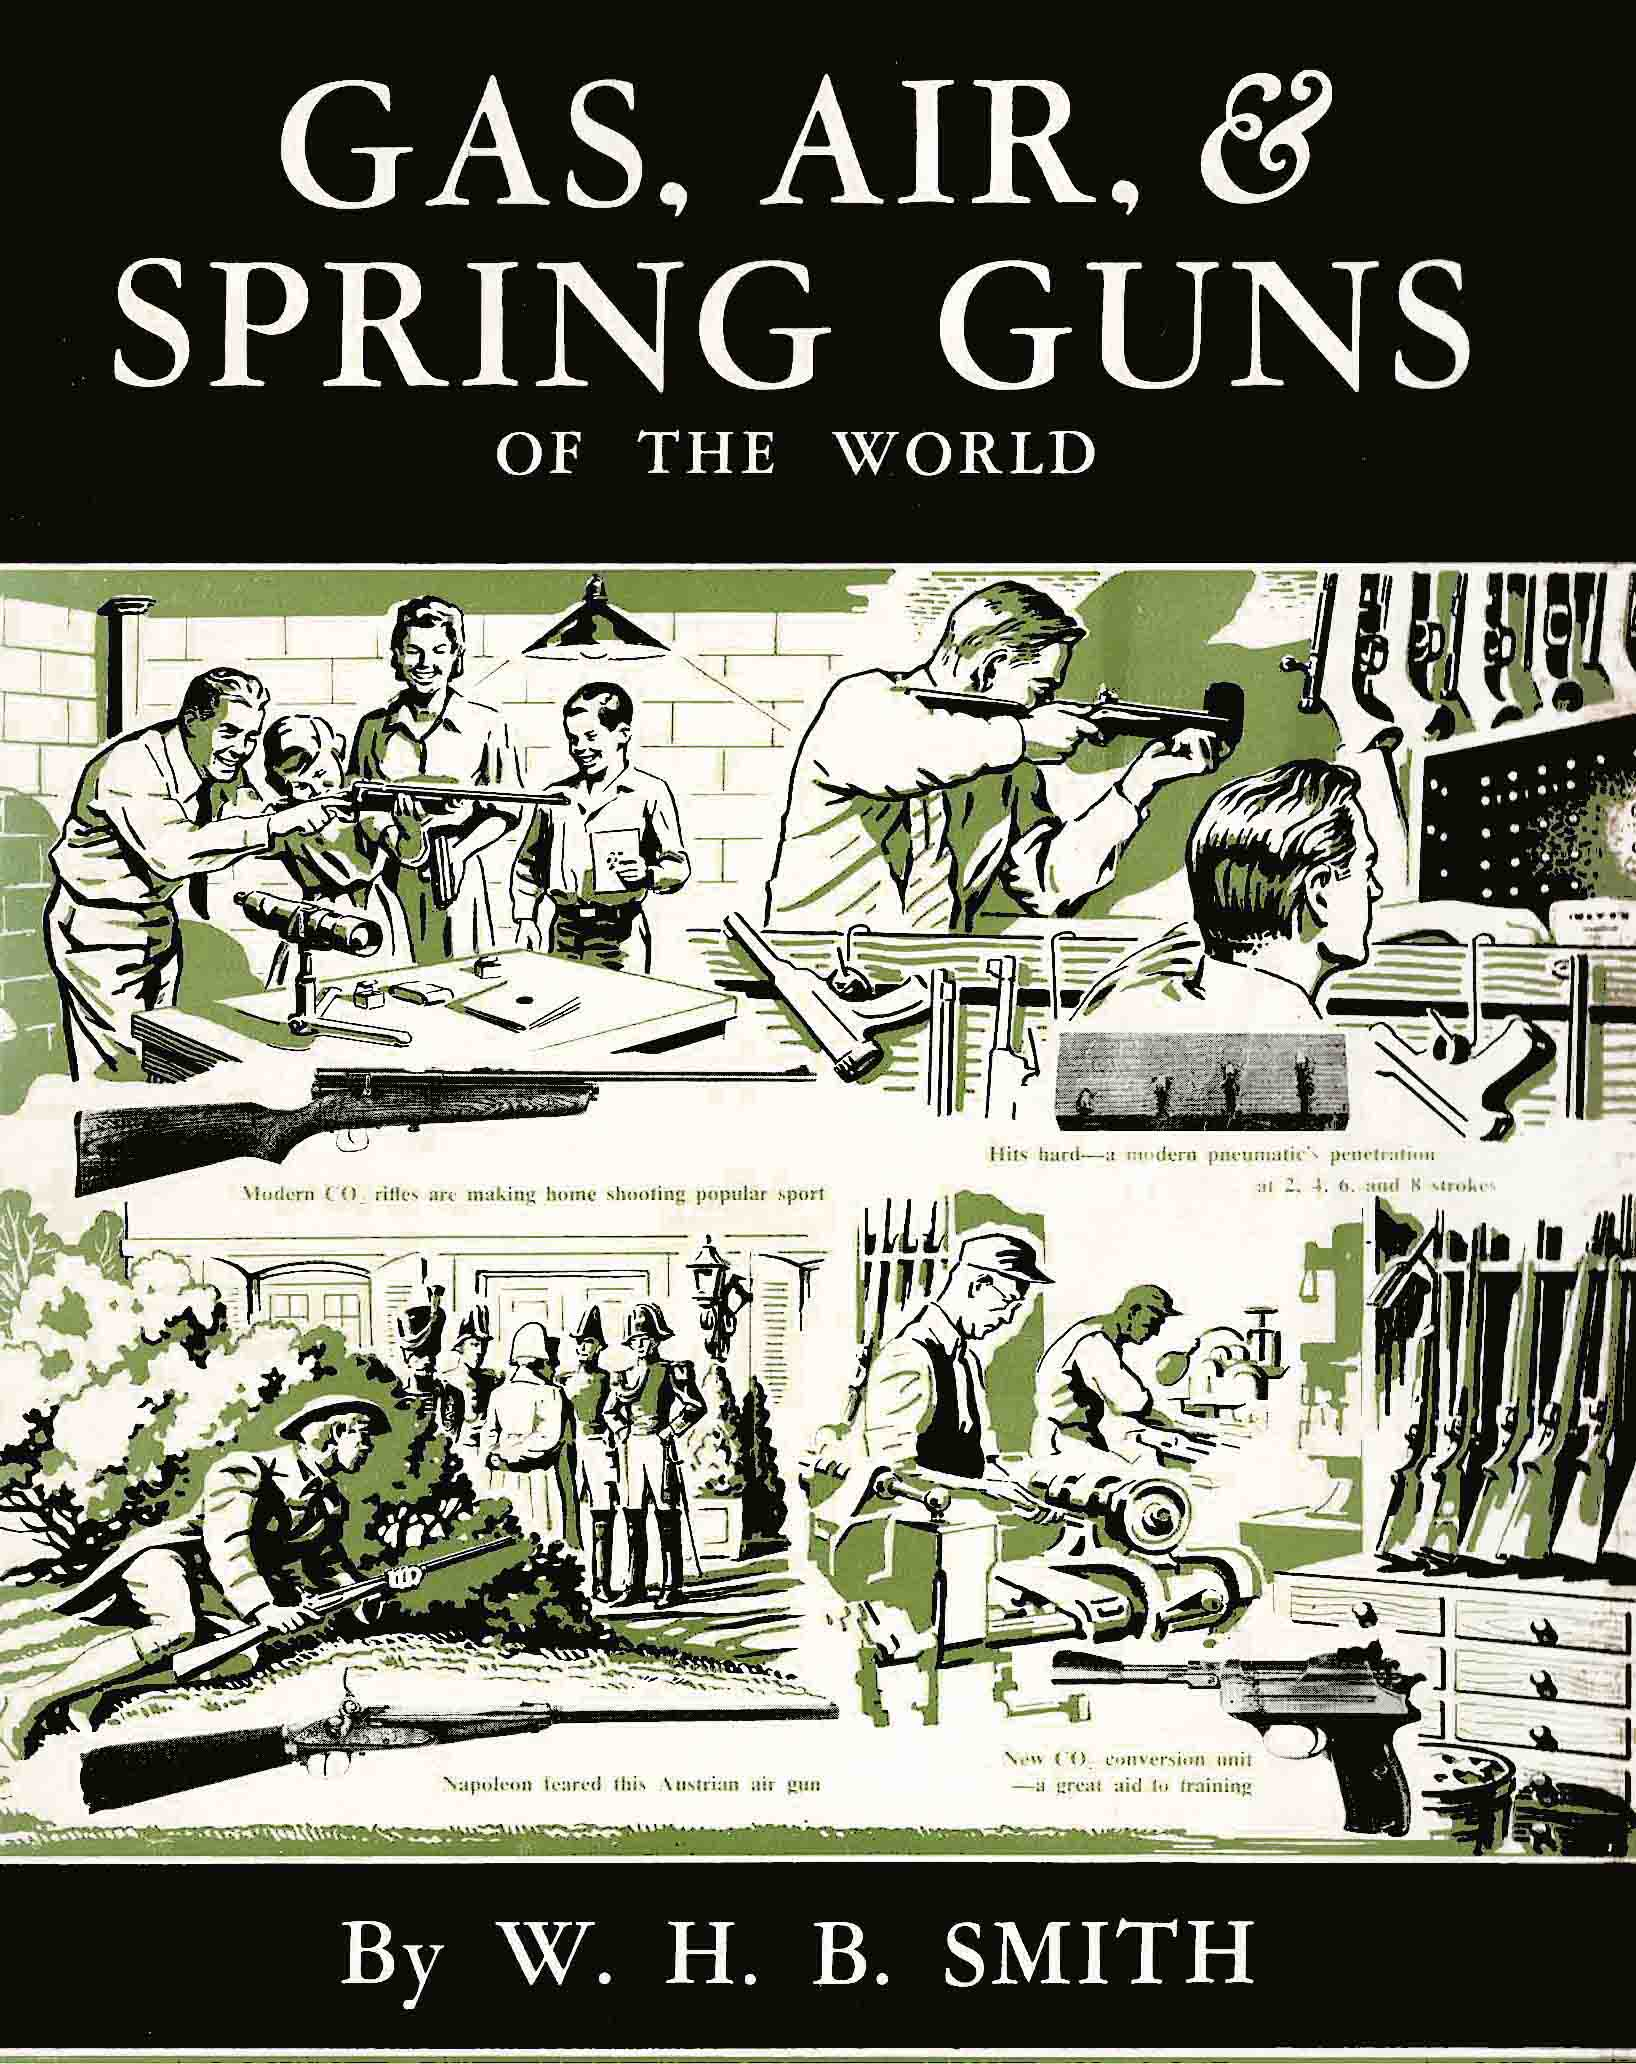 Gas, Air & Spring Guns of the World 1957 W.H.B. Smith